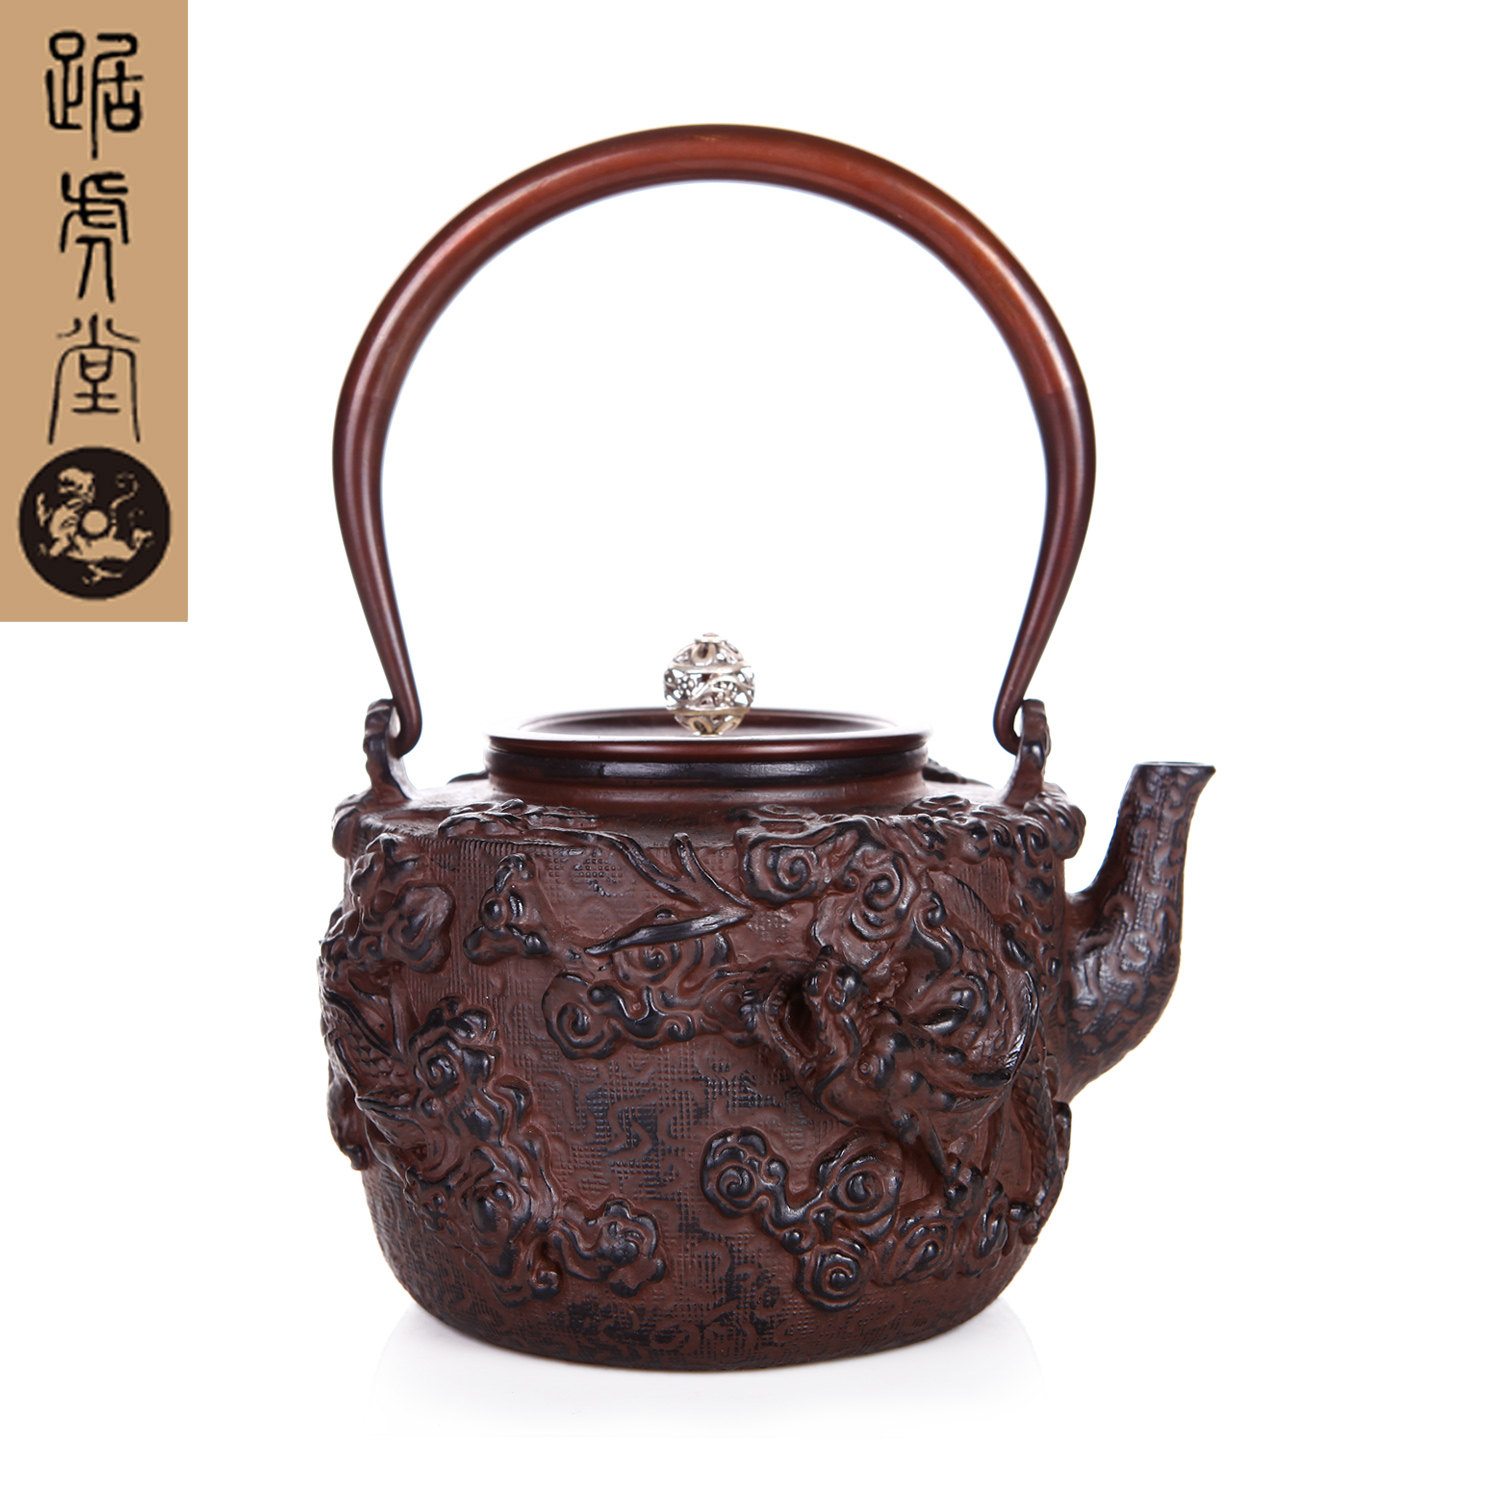 Tiger hall squat yunlong sailing craft health iron kettle southern japan iron teapot uncoated cast iron pot free shipping